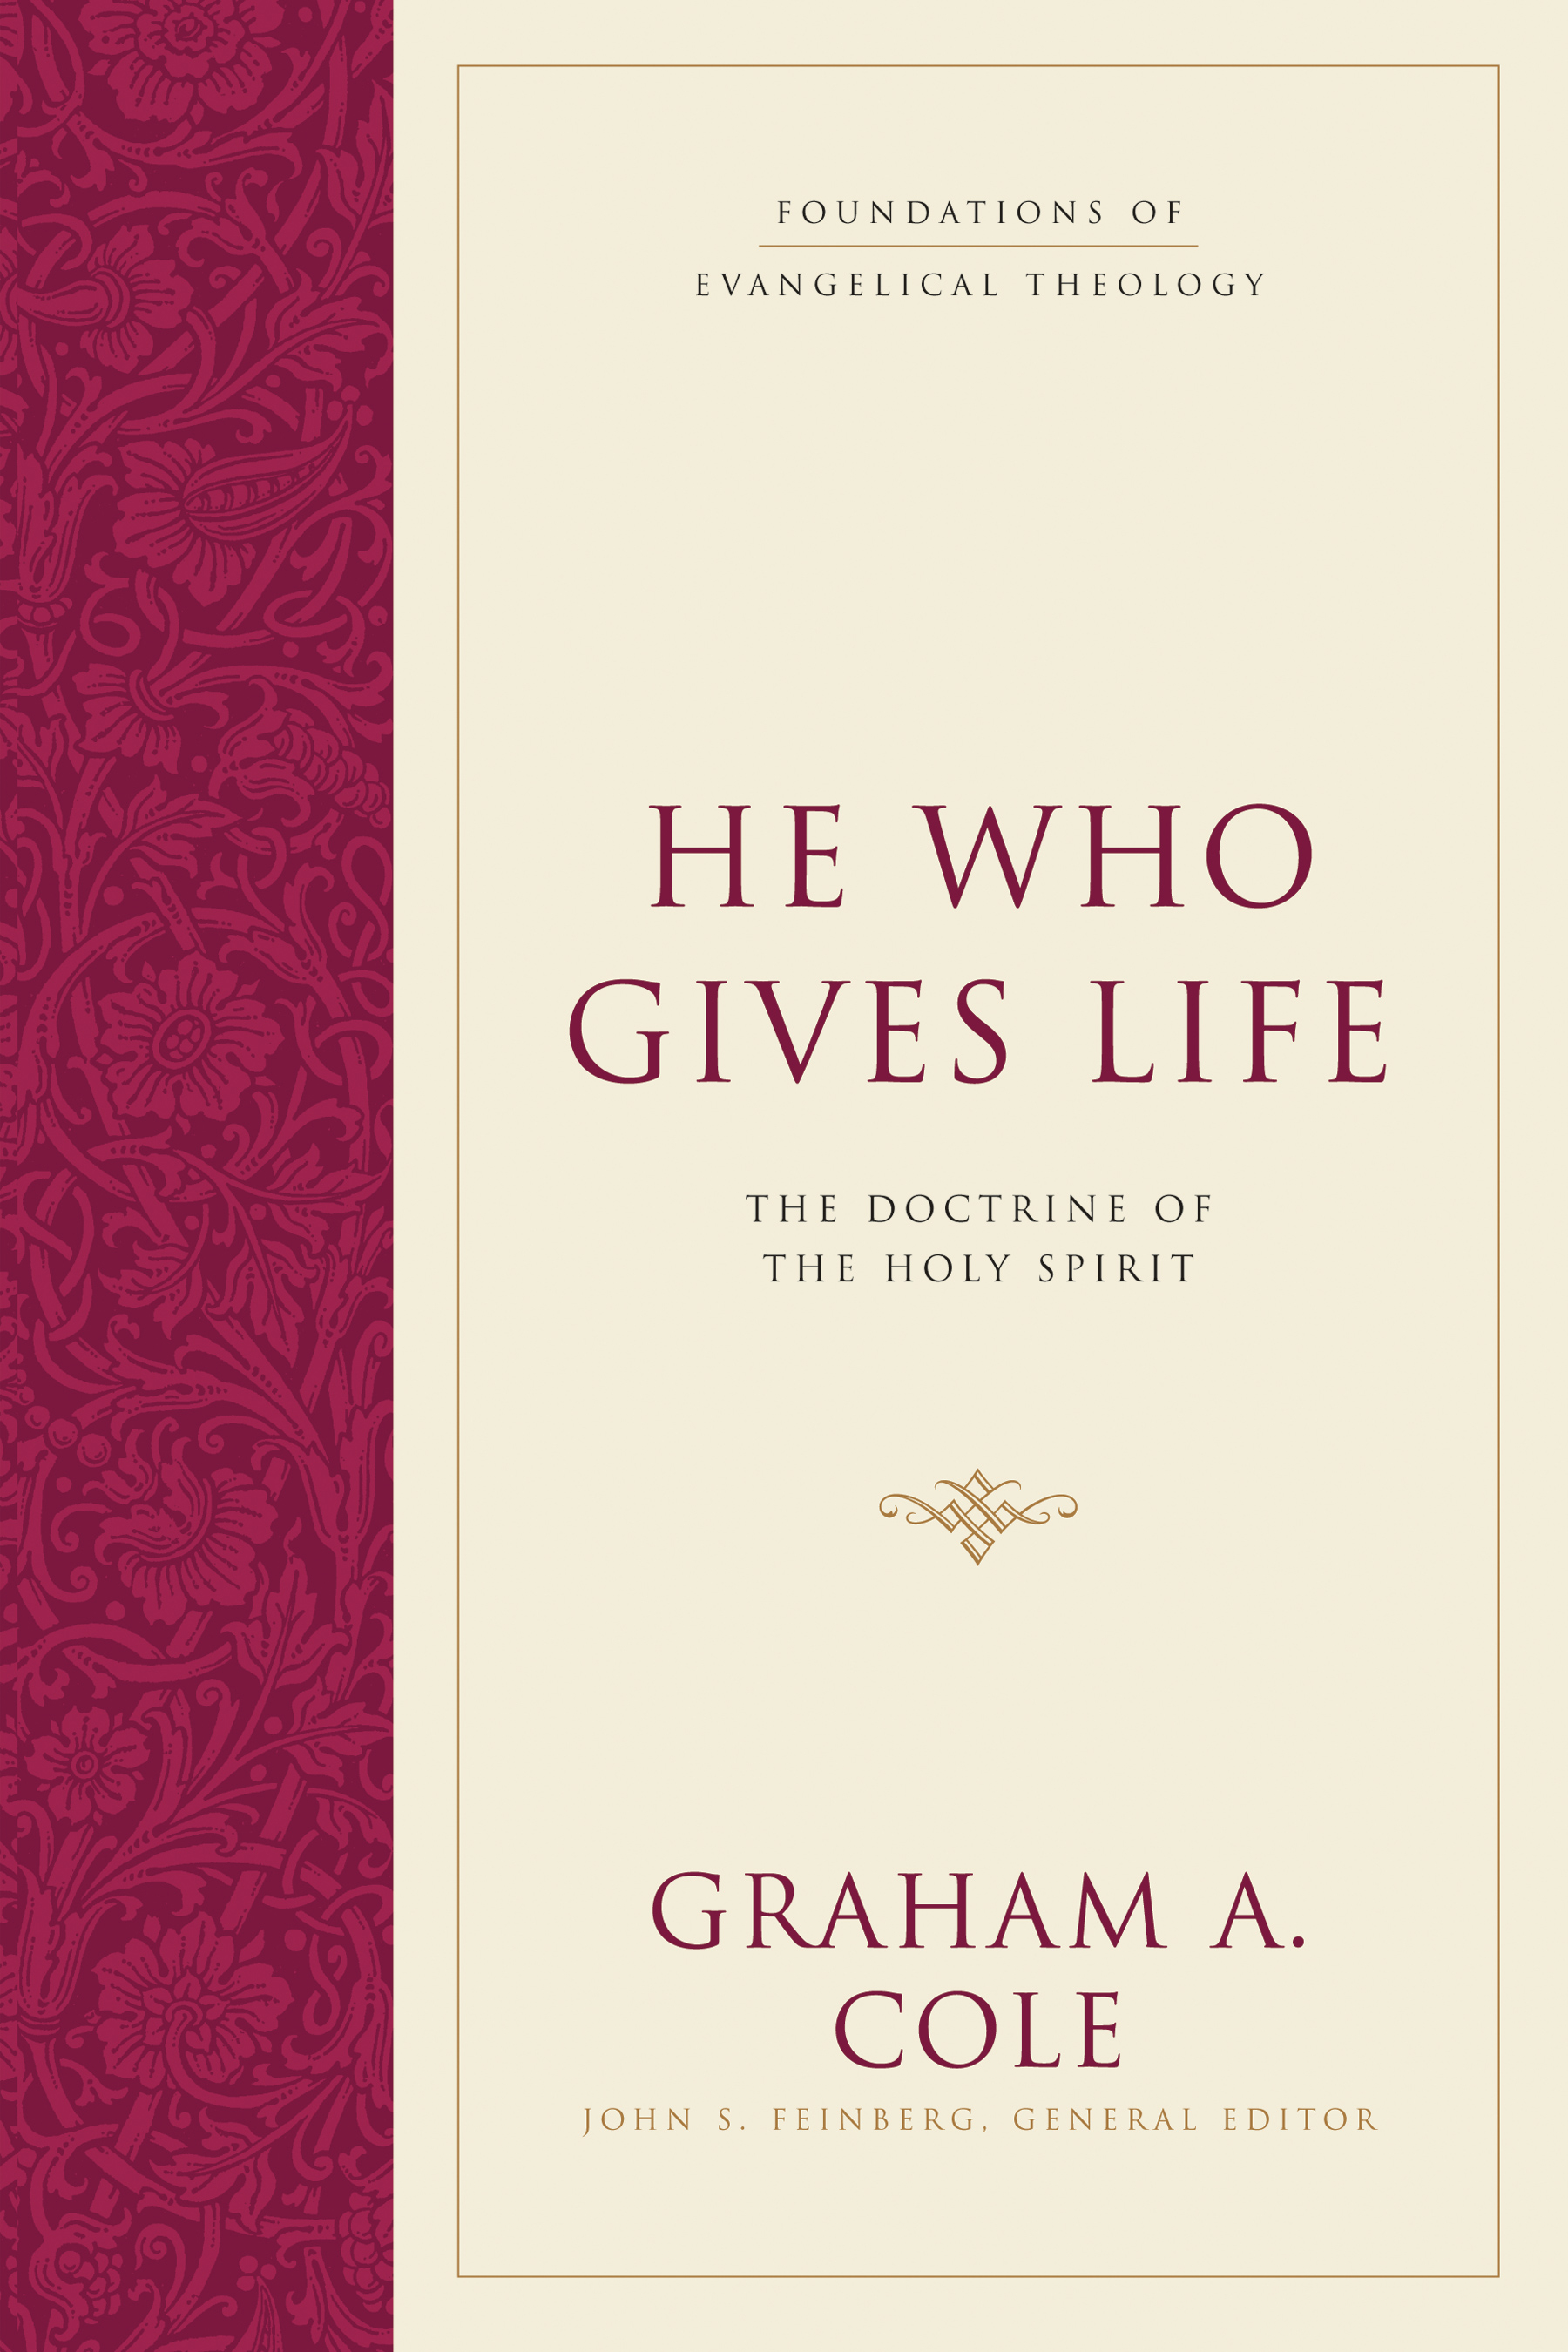 He Who Gives Life The Doctrine of the Holy Spirit